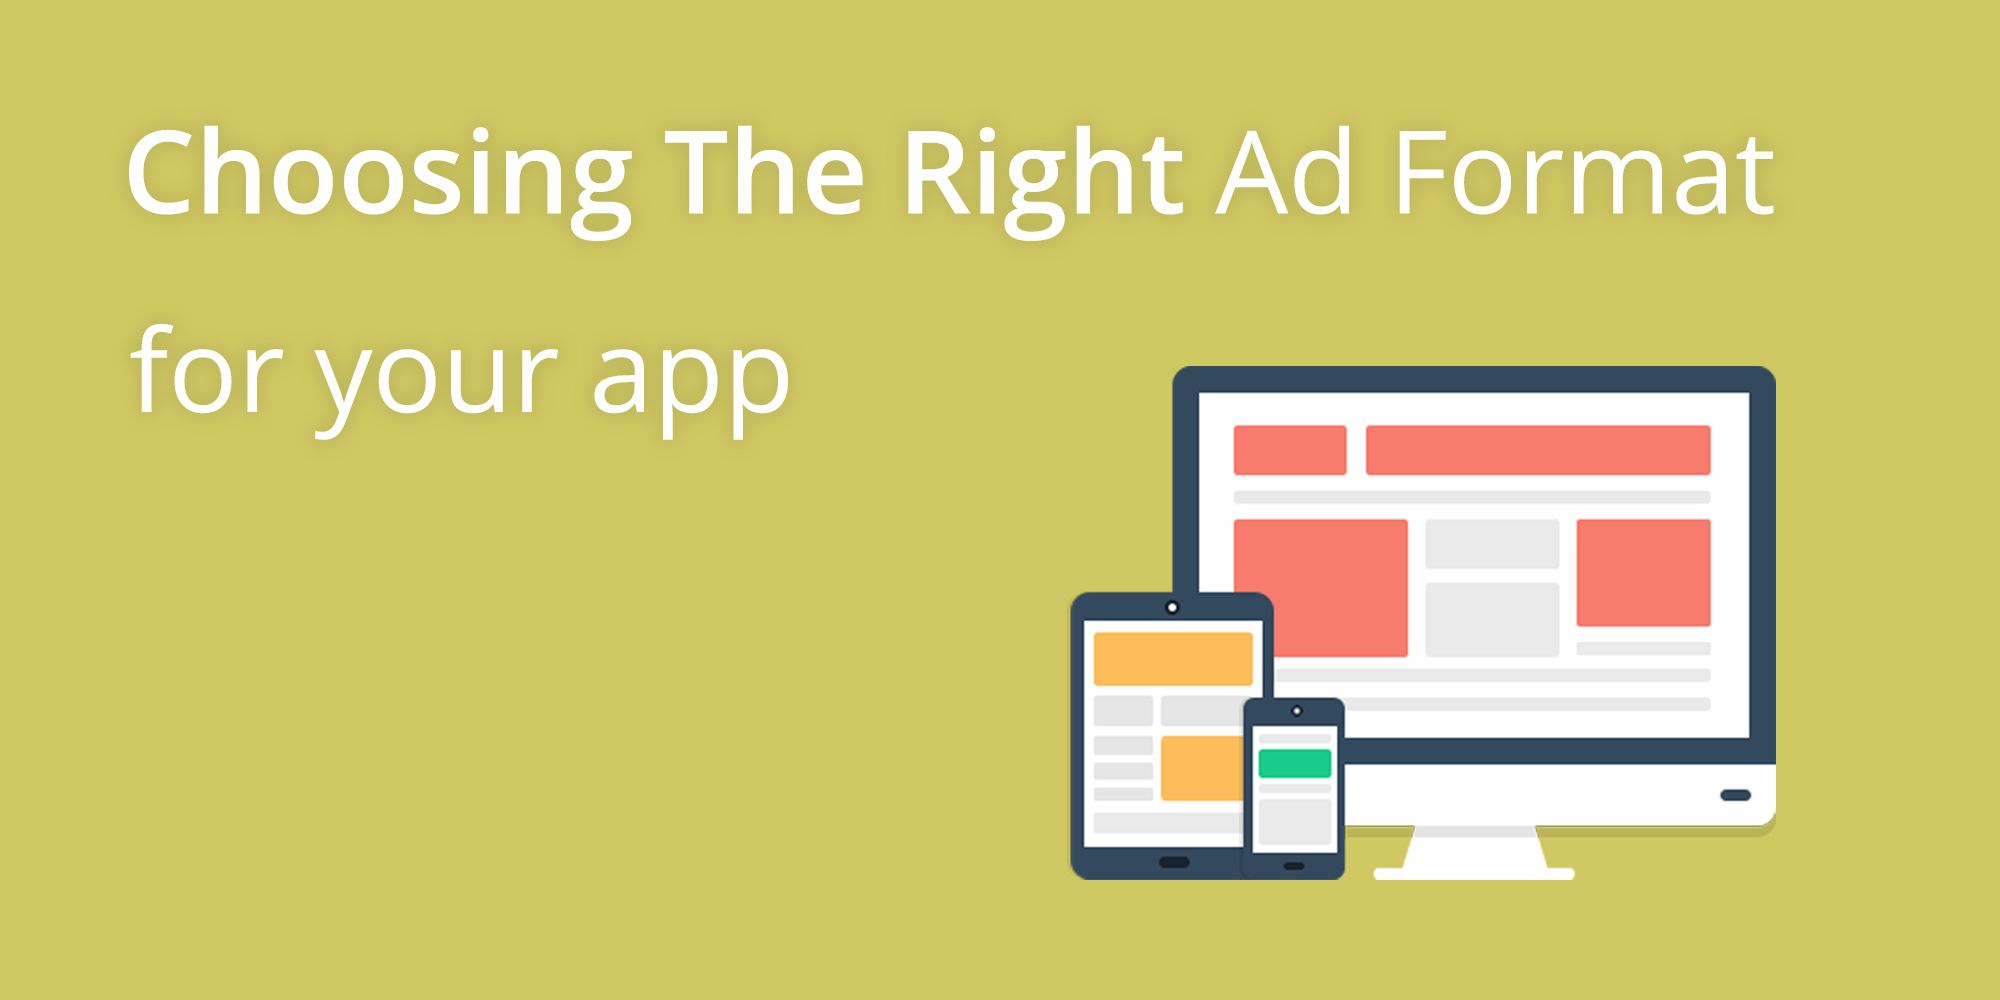 The one question you must answer before choosing the ad format for your mobile app